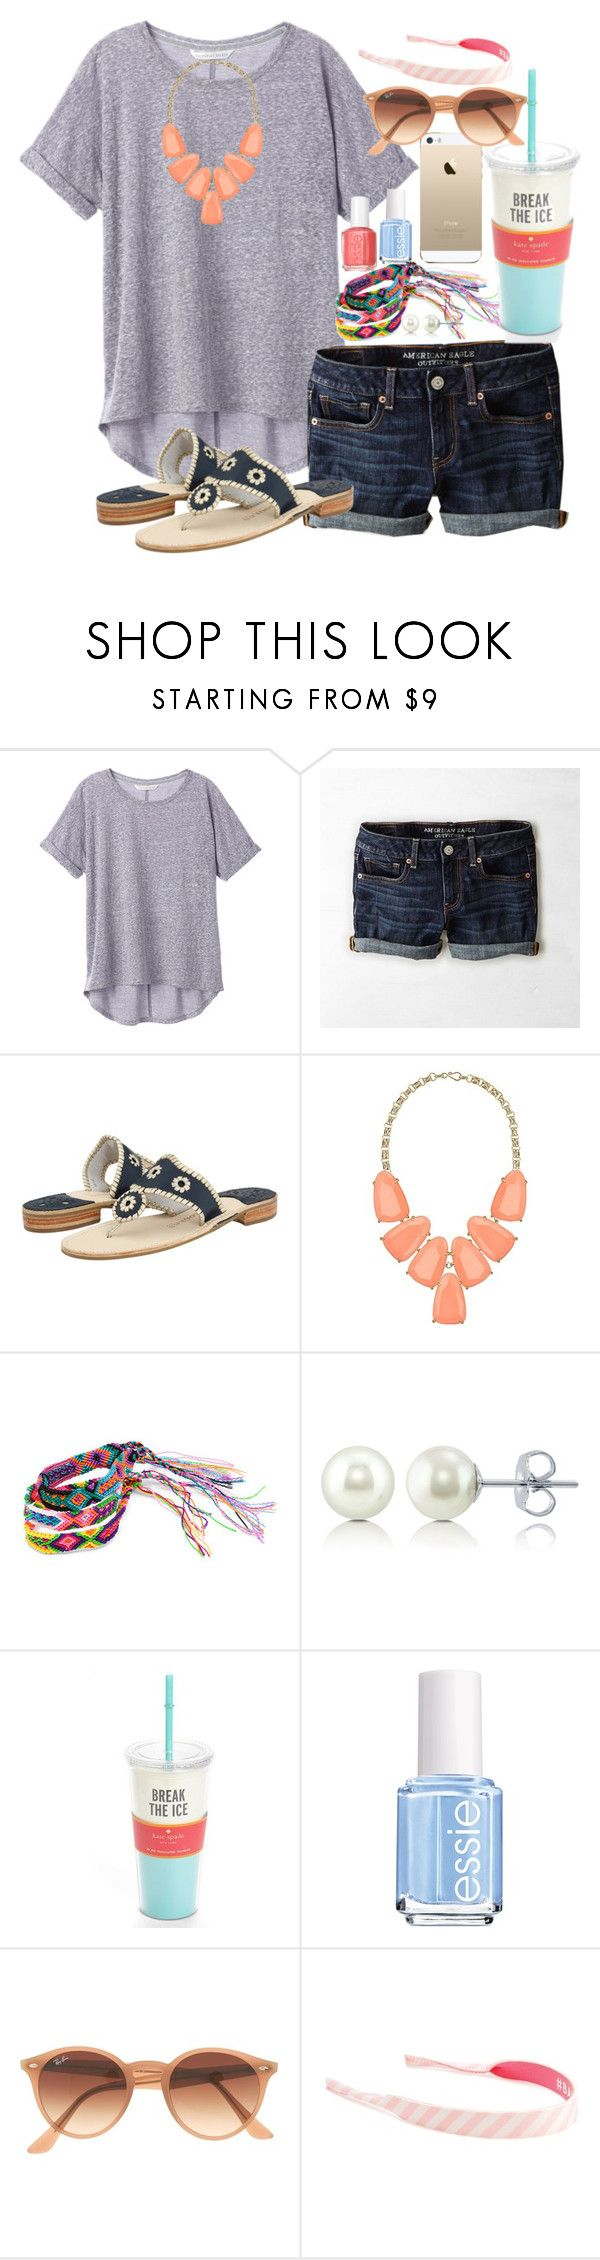 """100 followers!!!!!"" by emilyw01 ❤ liked on Polyvore featuring American Eagle Outfitters, Jack Rogers, Kendra Scott, FingerPrint Jewellry, Element, BERRICLE, Kate Spade, Essie, Ray-Ban and ban.do"